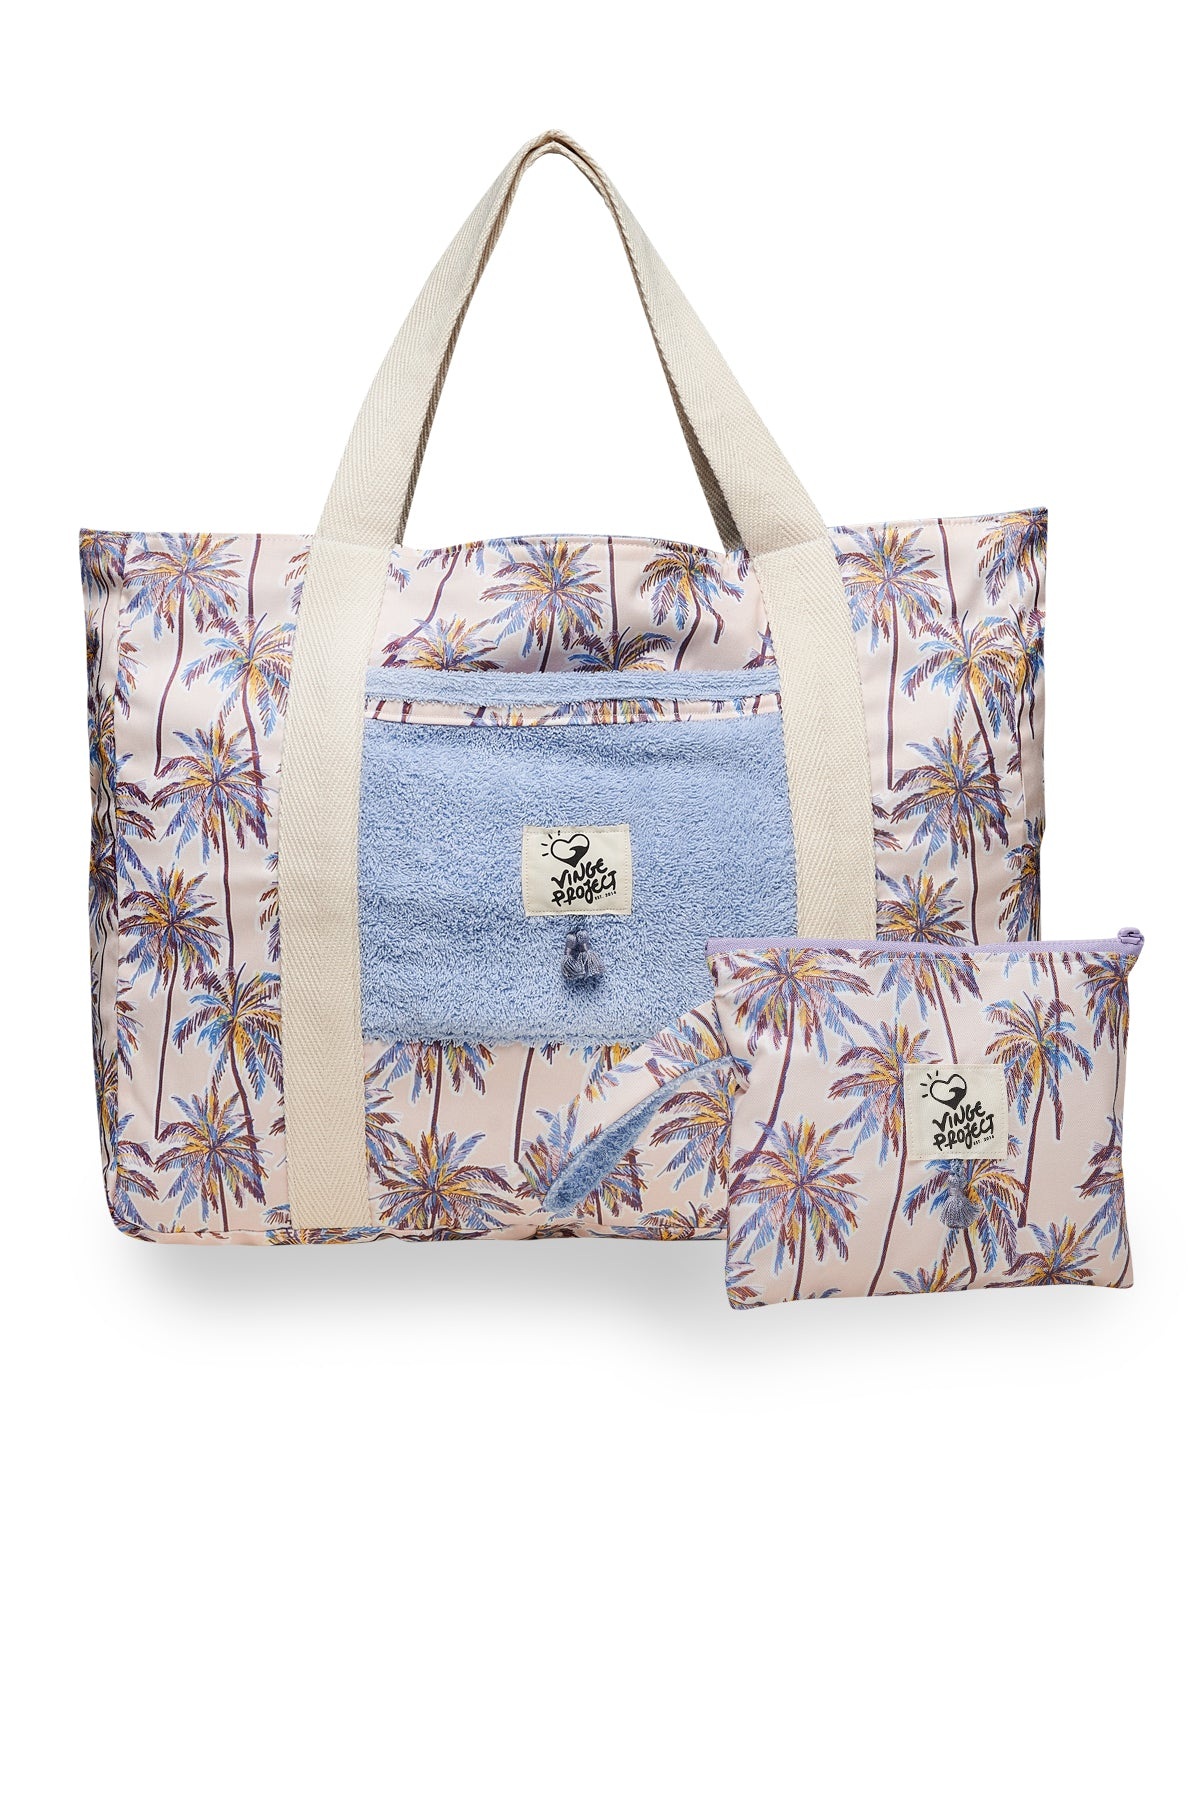 Beach Bag & Small Clutch Bag Set